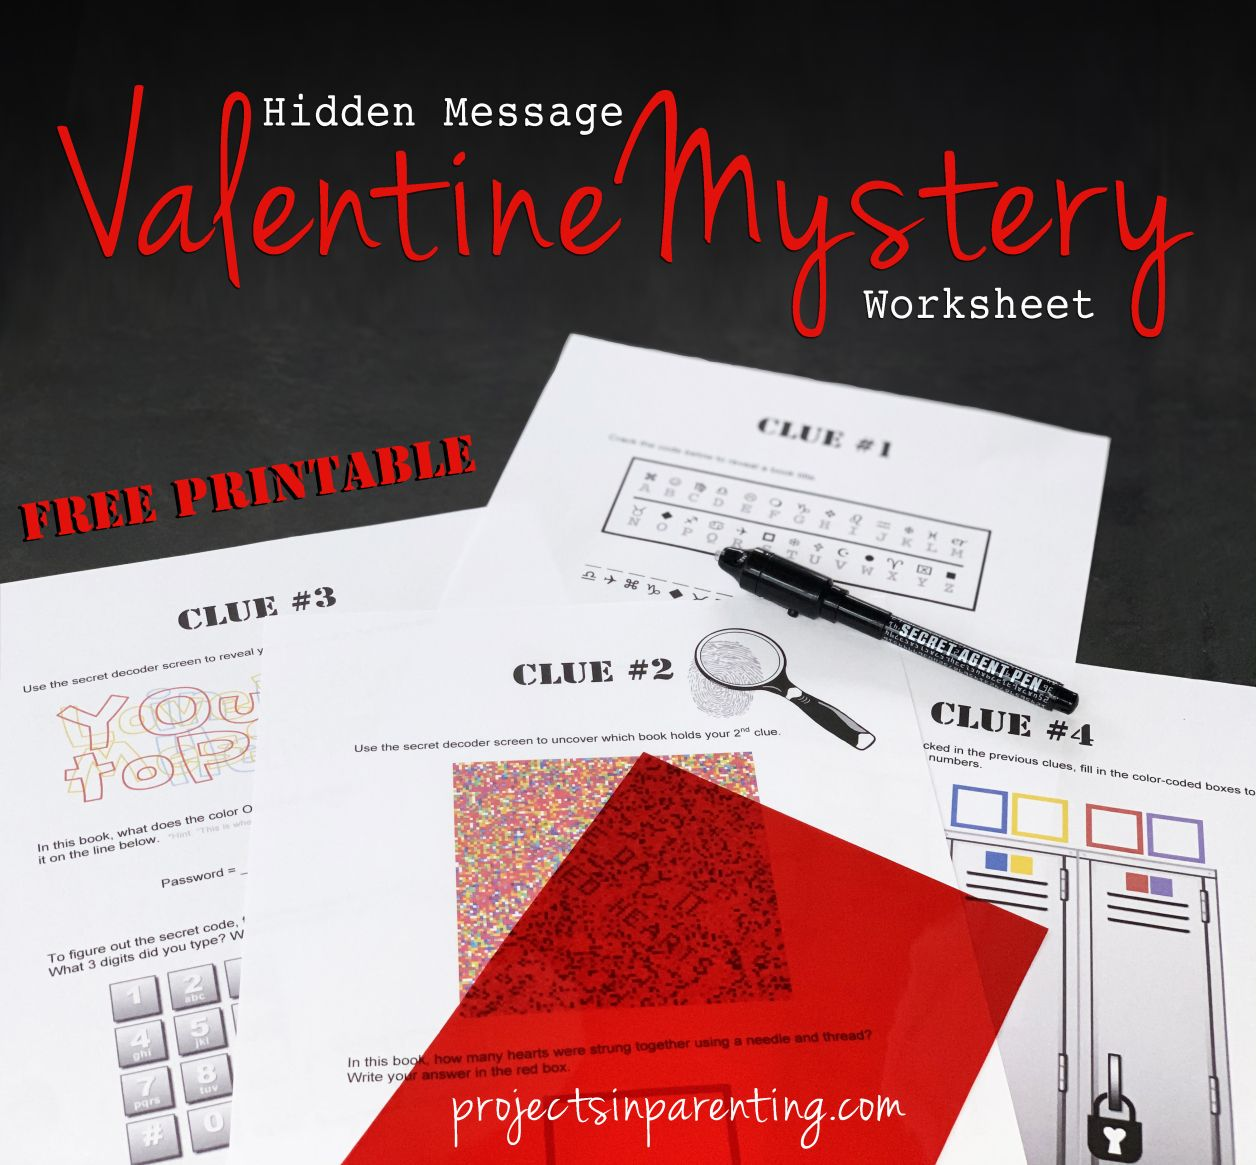 Hidden Message Valentine Mystery Worksheet In